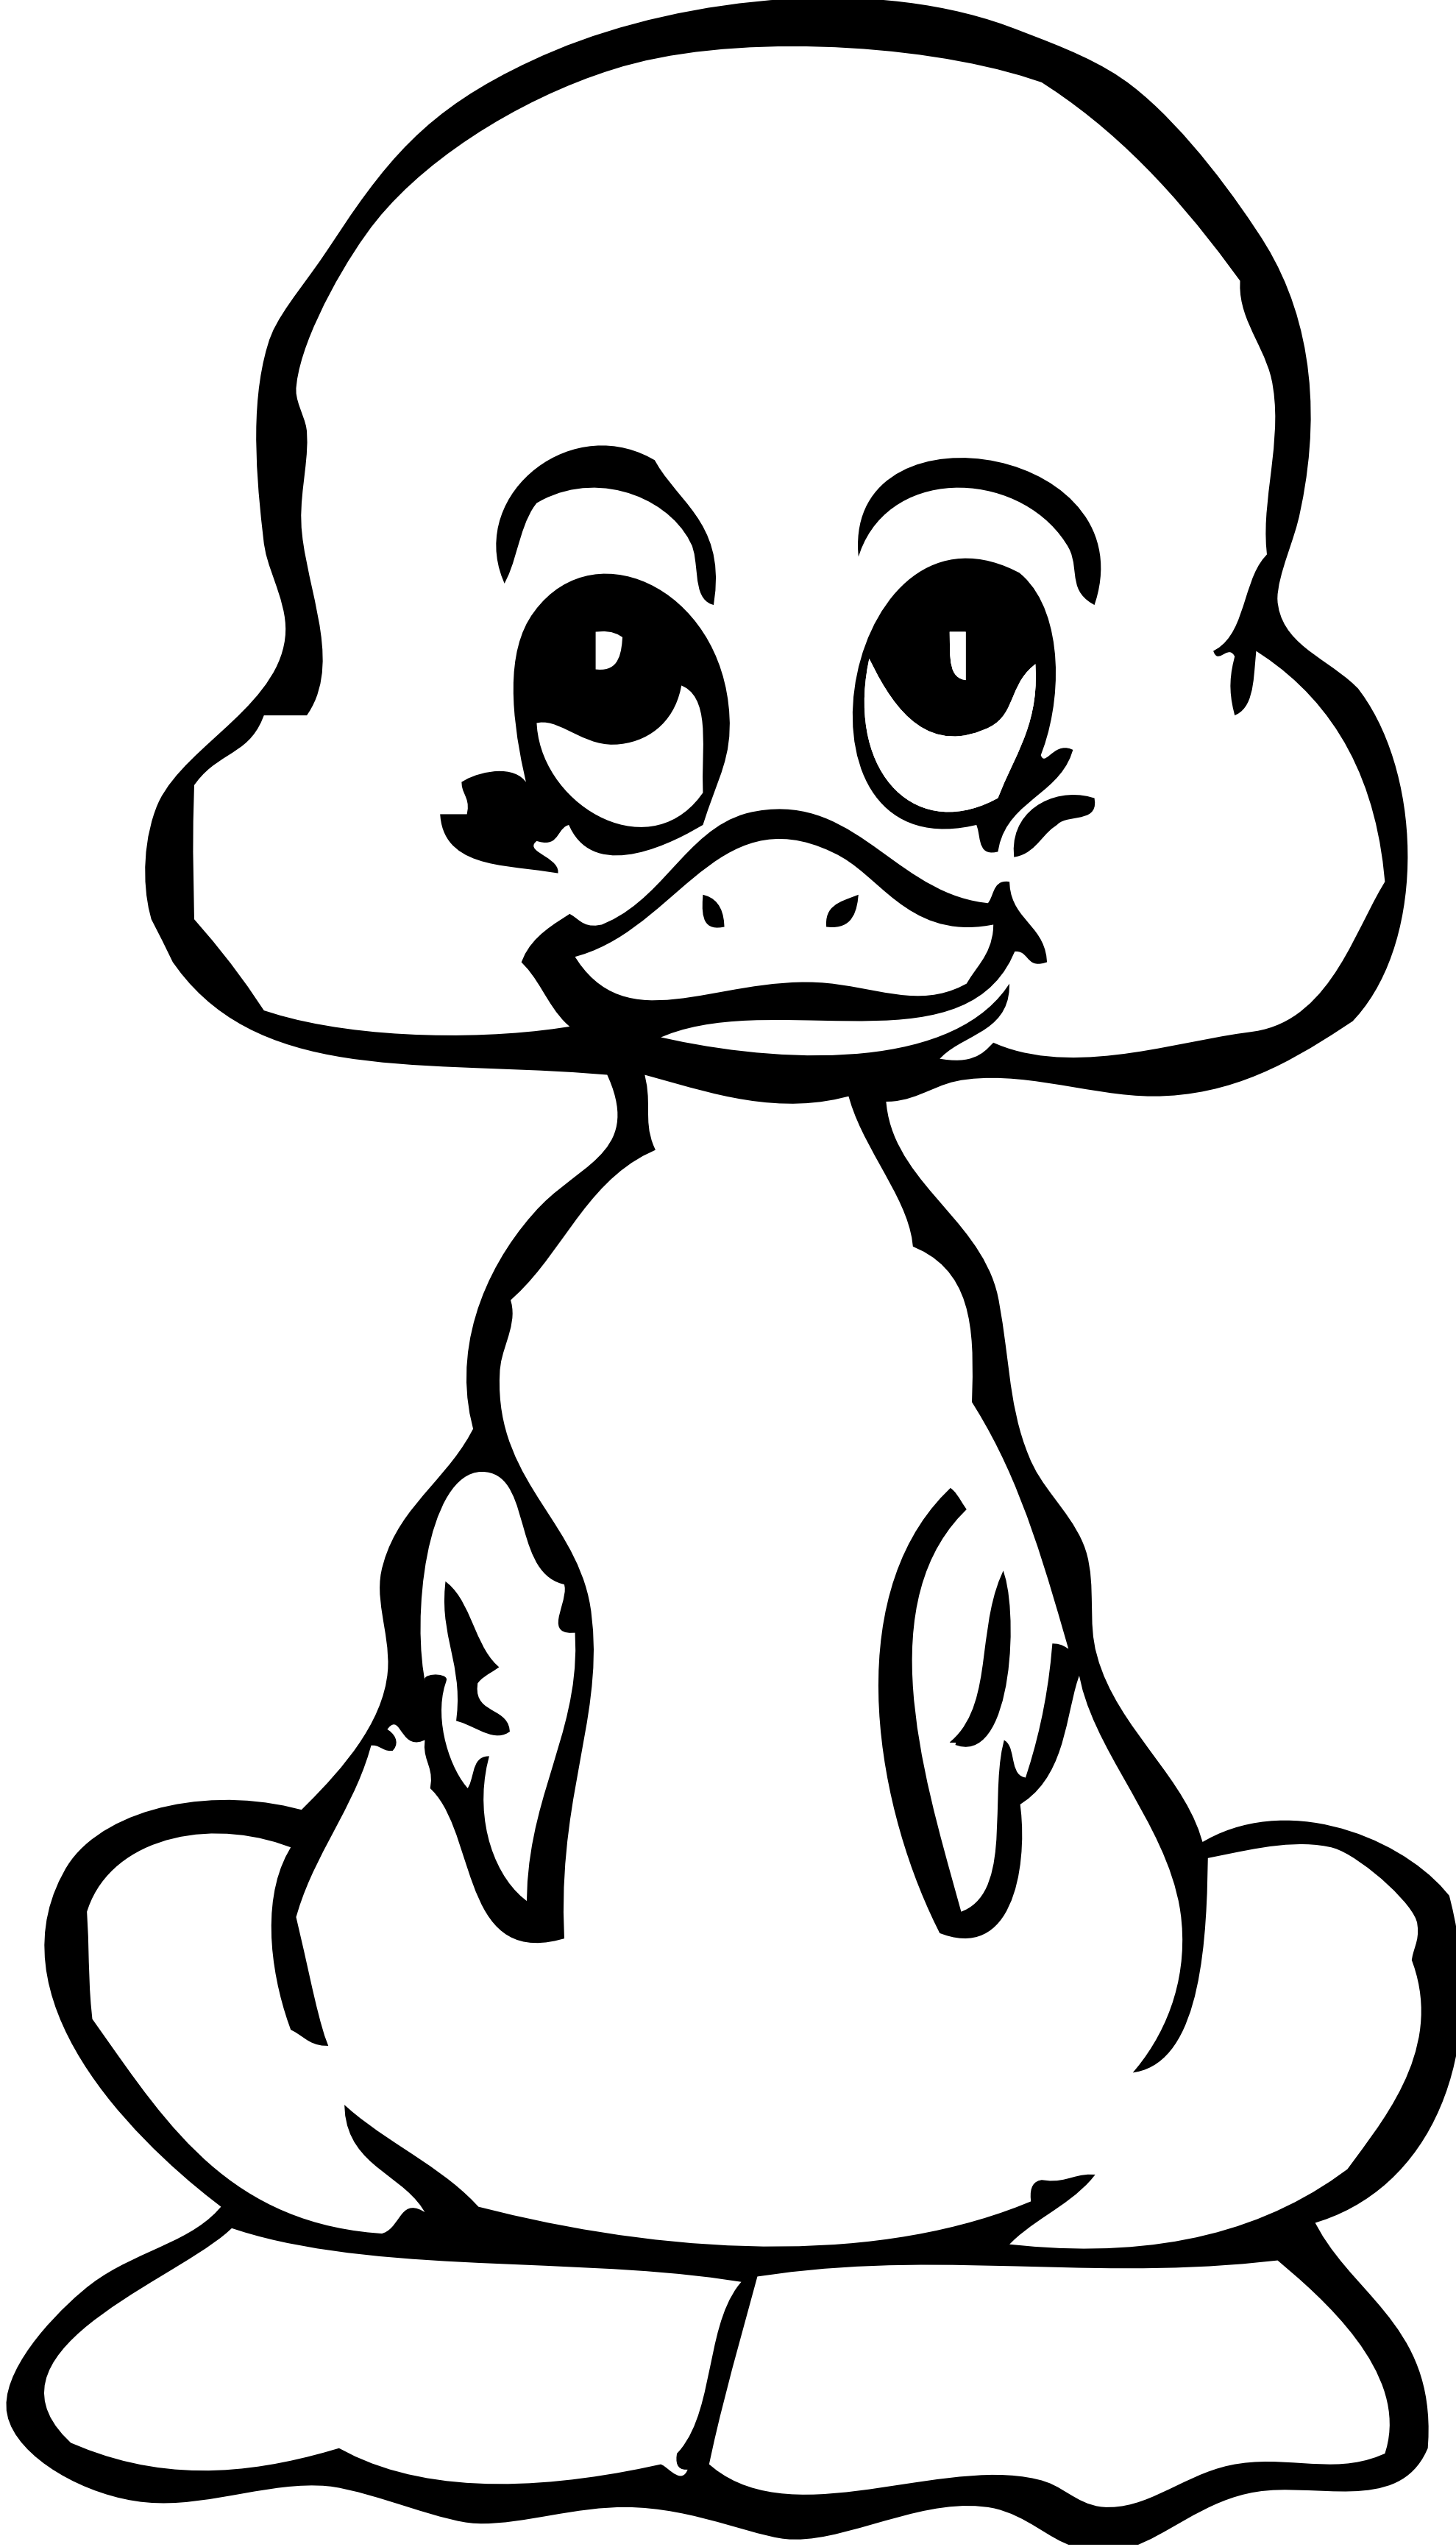 Pacifier clipart baby shower. Duck outline drawing at